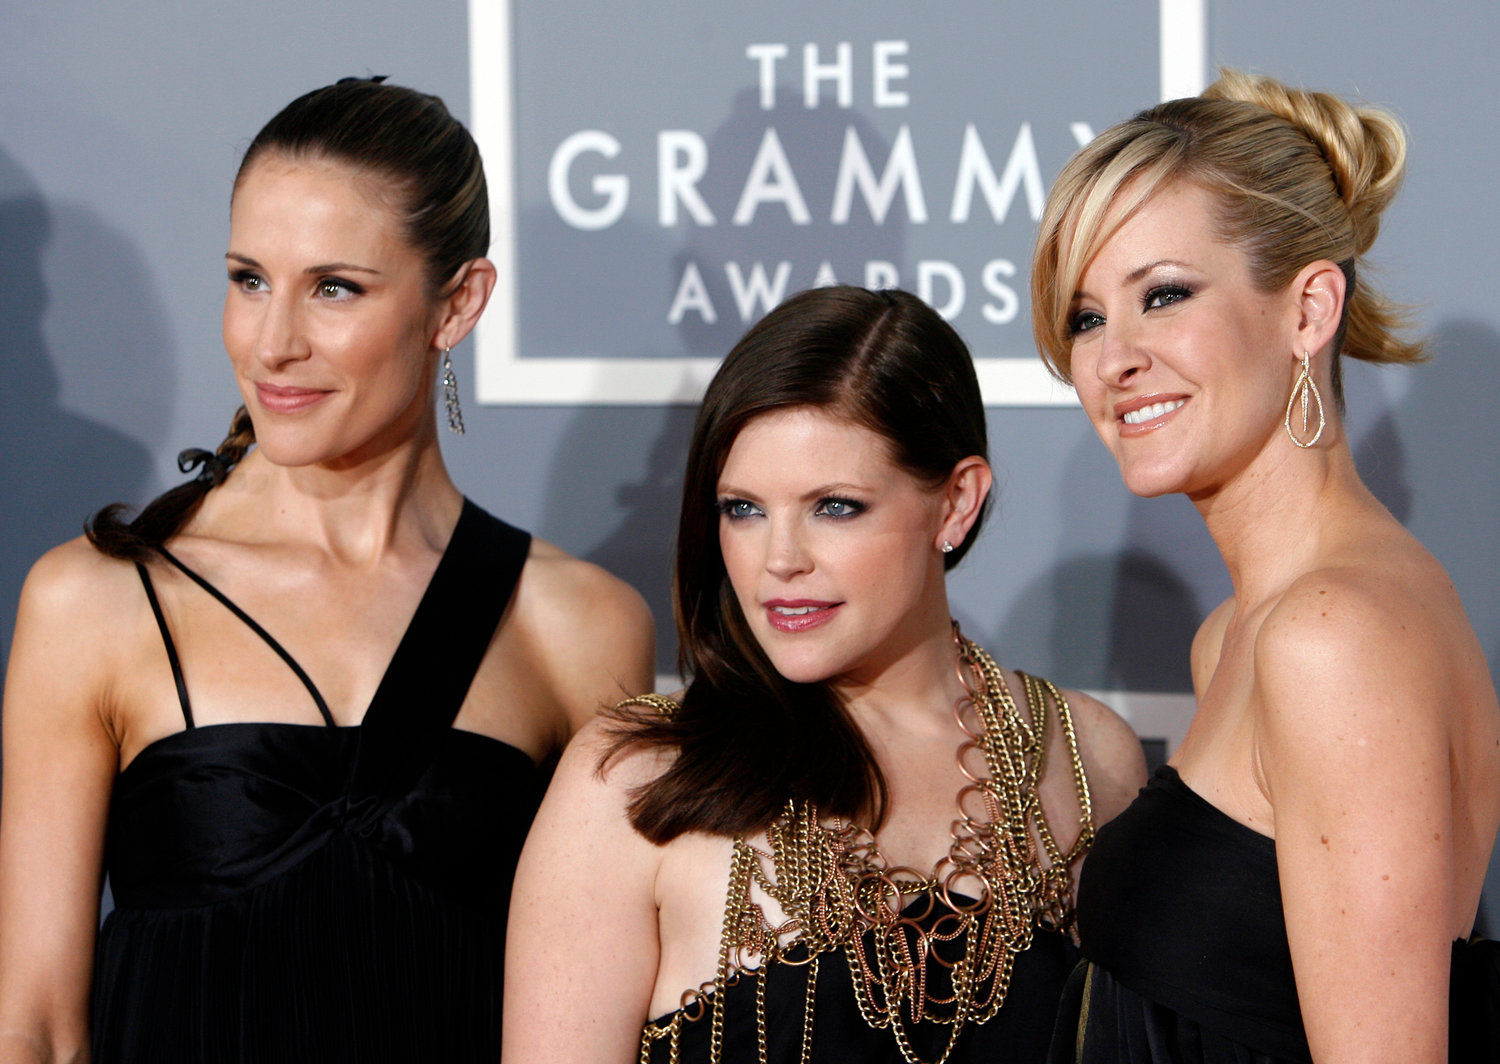 In this Feb. 11, 2007 file photo, the Dixie Chicks, Emily Robison, left, Natalie Maines, center, and Martie Maguire arrive for the 49th Annual Grammy Awards in Los Angeles. The Grammy-winning country group have dropped the word dixie from their name and are now going by The Chicks. The move follows a decision by country group Lady Antebellum to change to Lady A after acknowledging the word's association to slavery. (AP Photo/Matt Sayles, File)